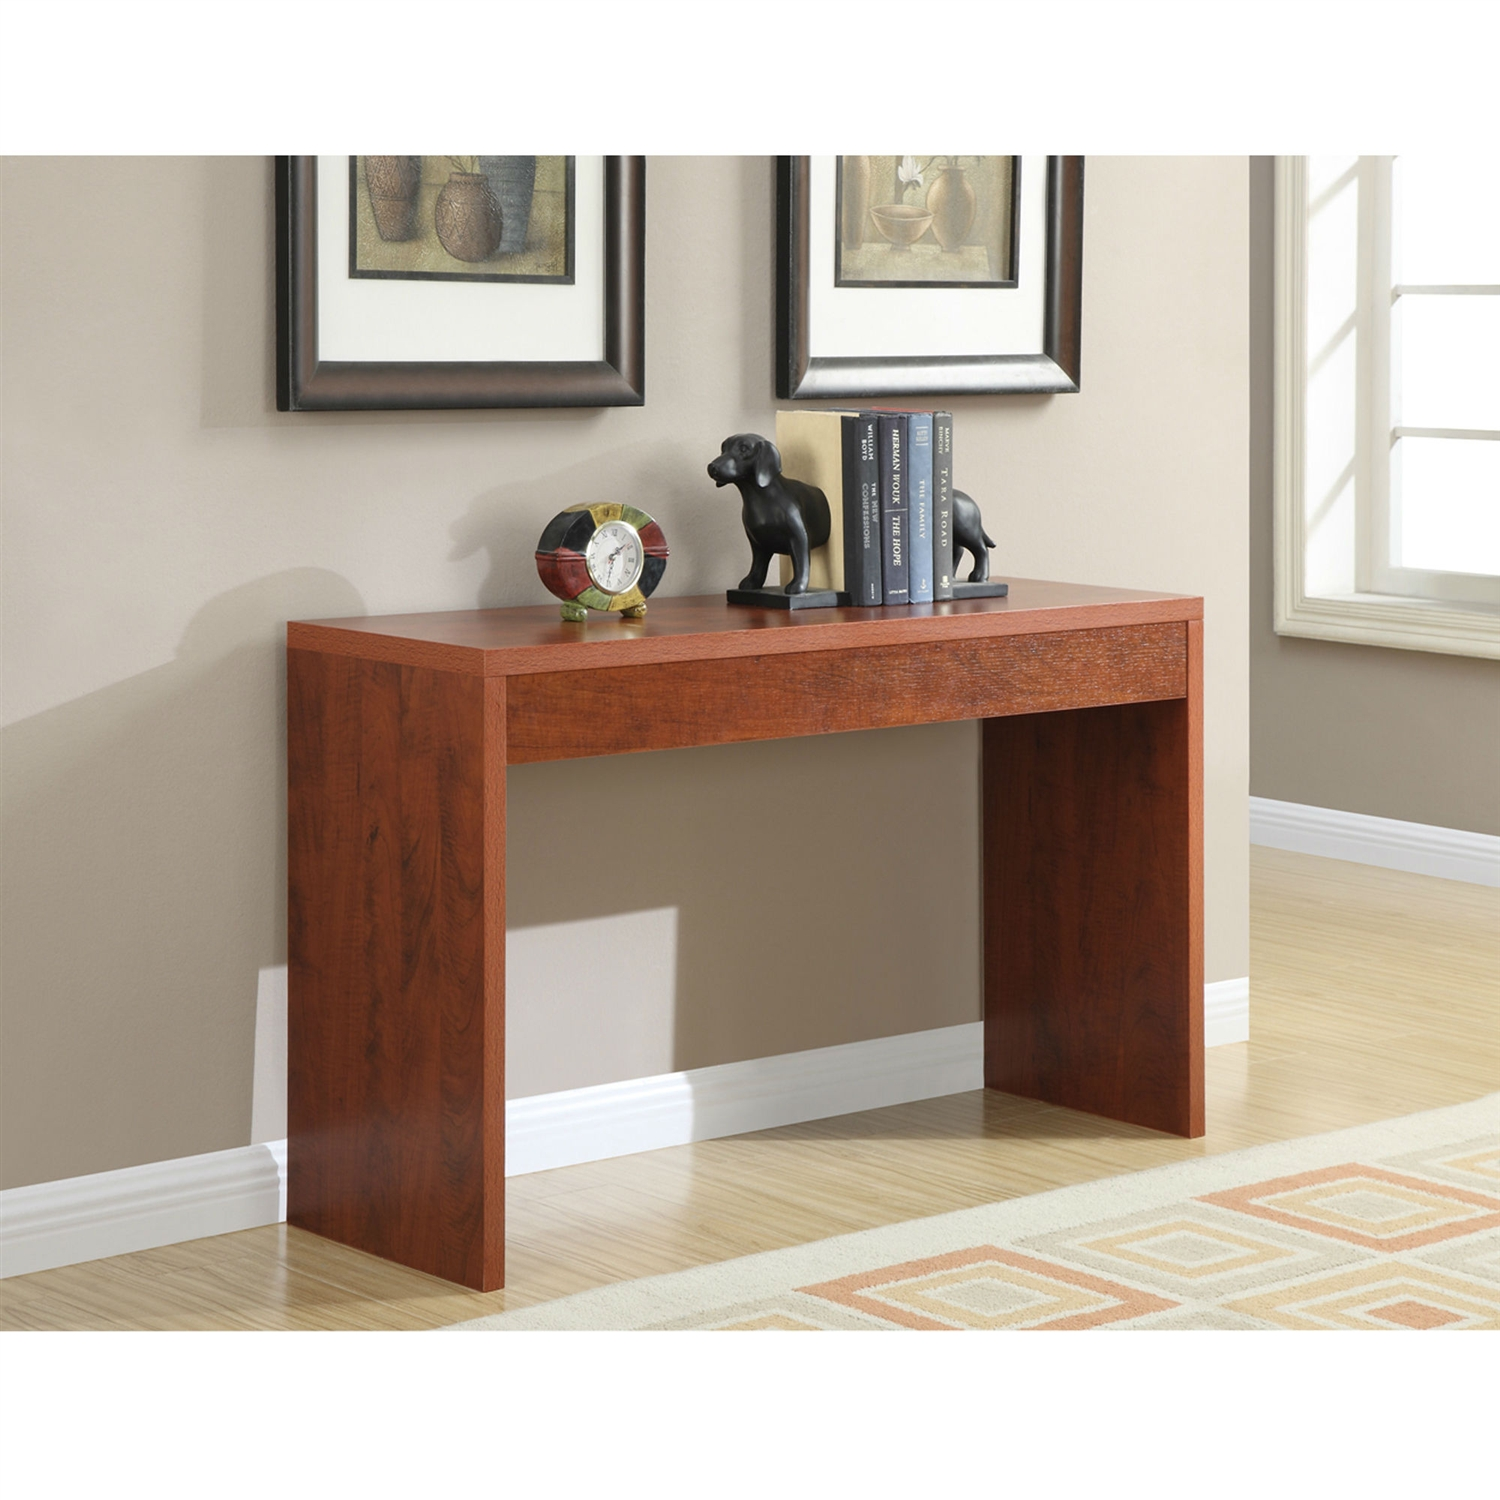 Awesome Cherry Finish Sofa Table Modern Living Room Console Table Bralicious Painted Fabric Chair Ideas Braliciousco